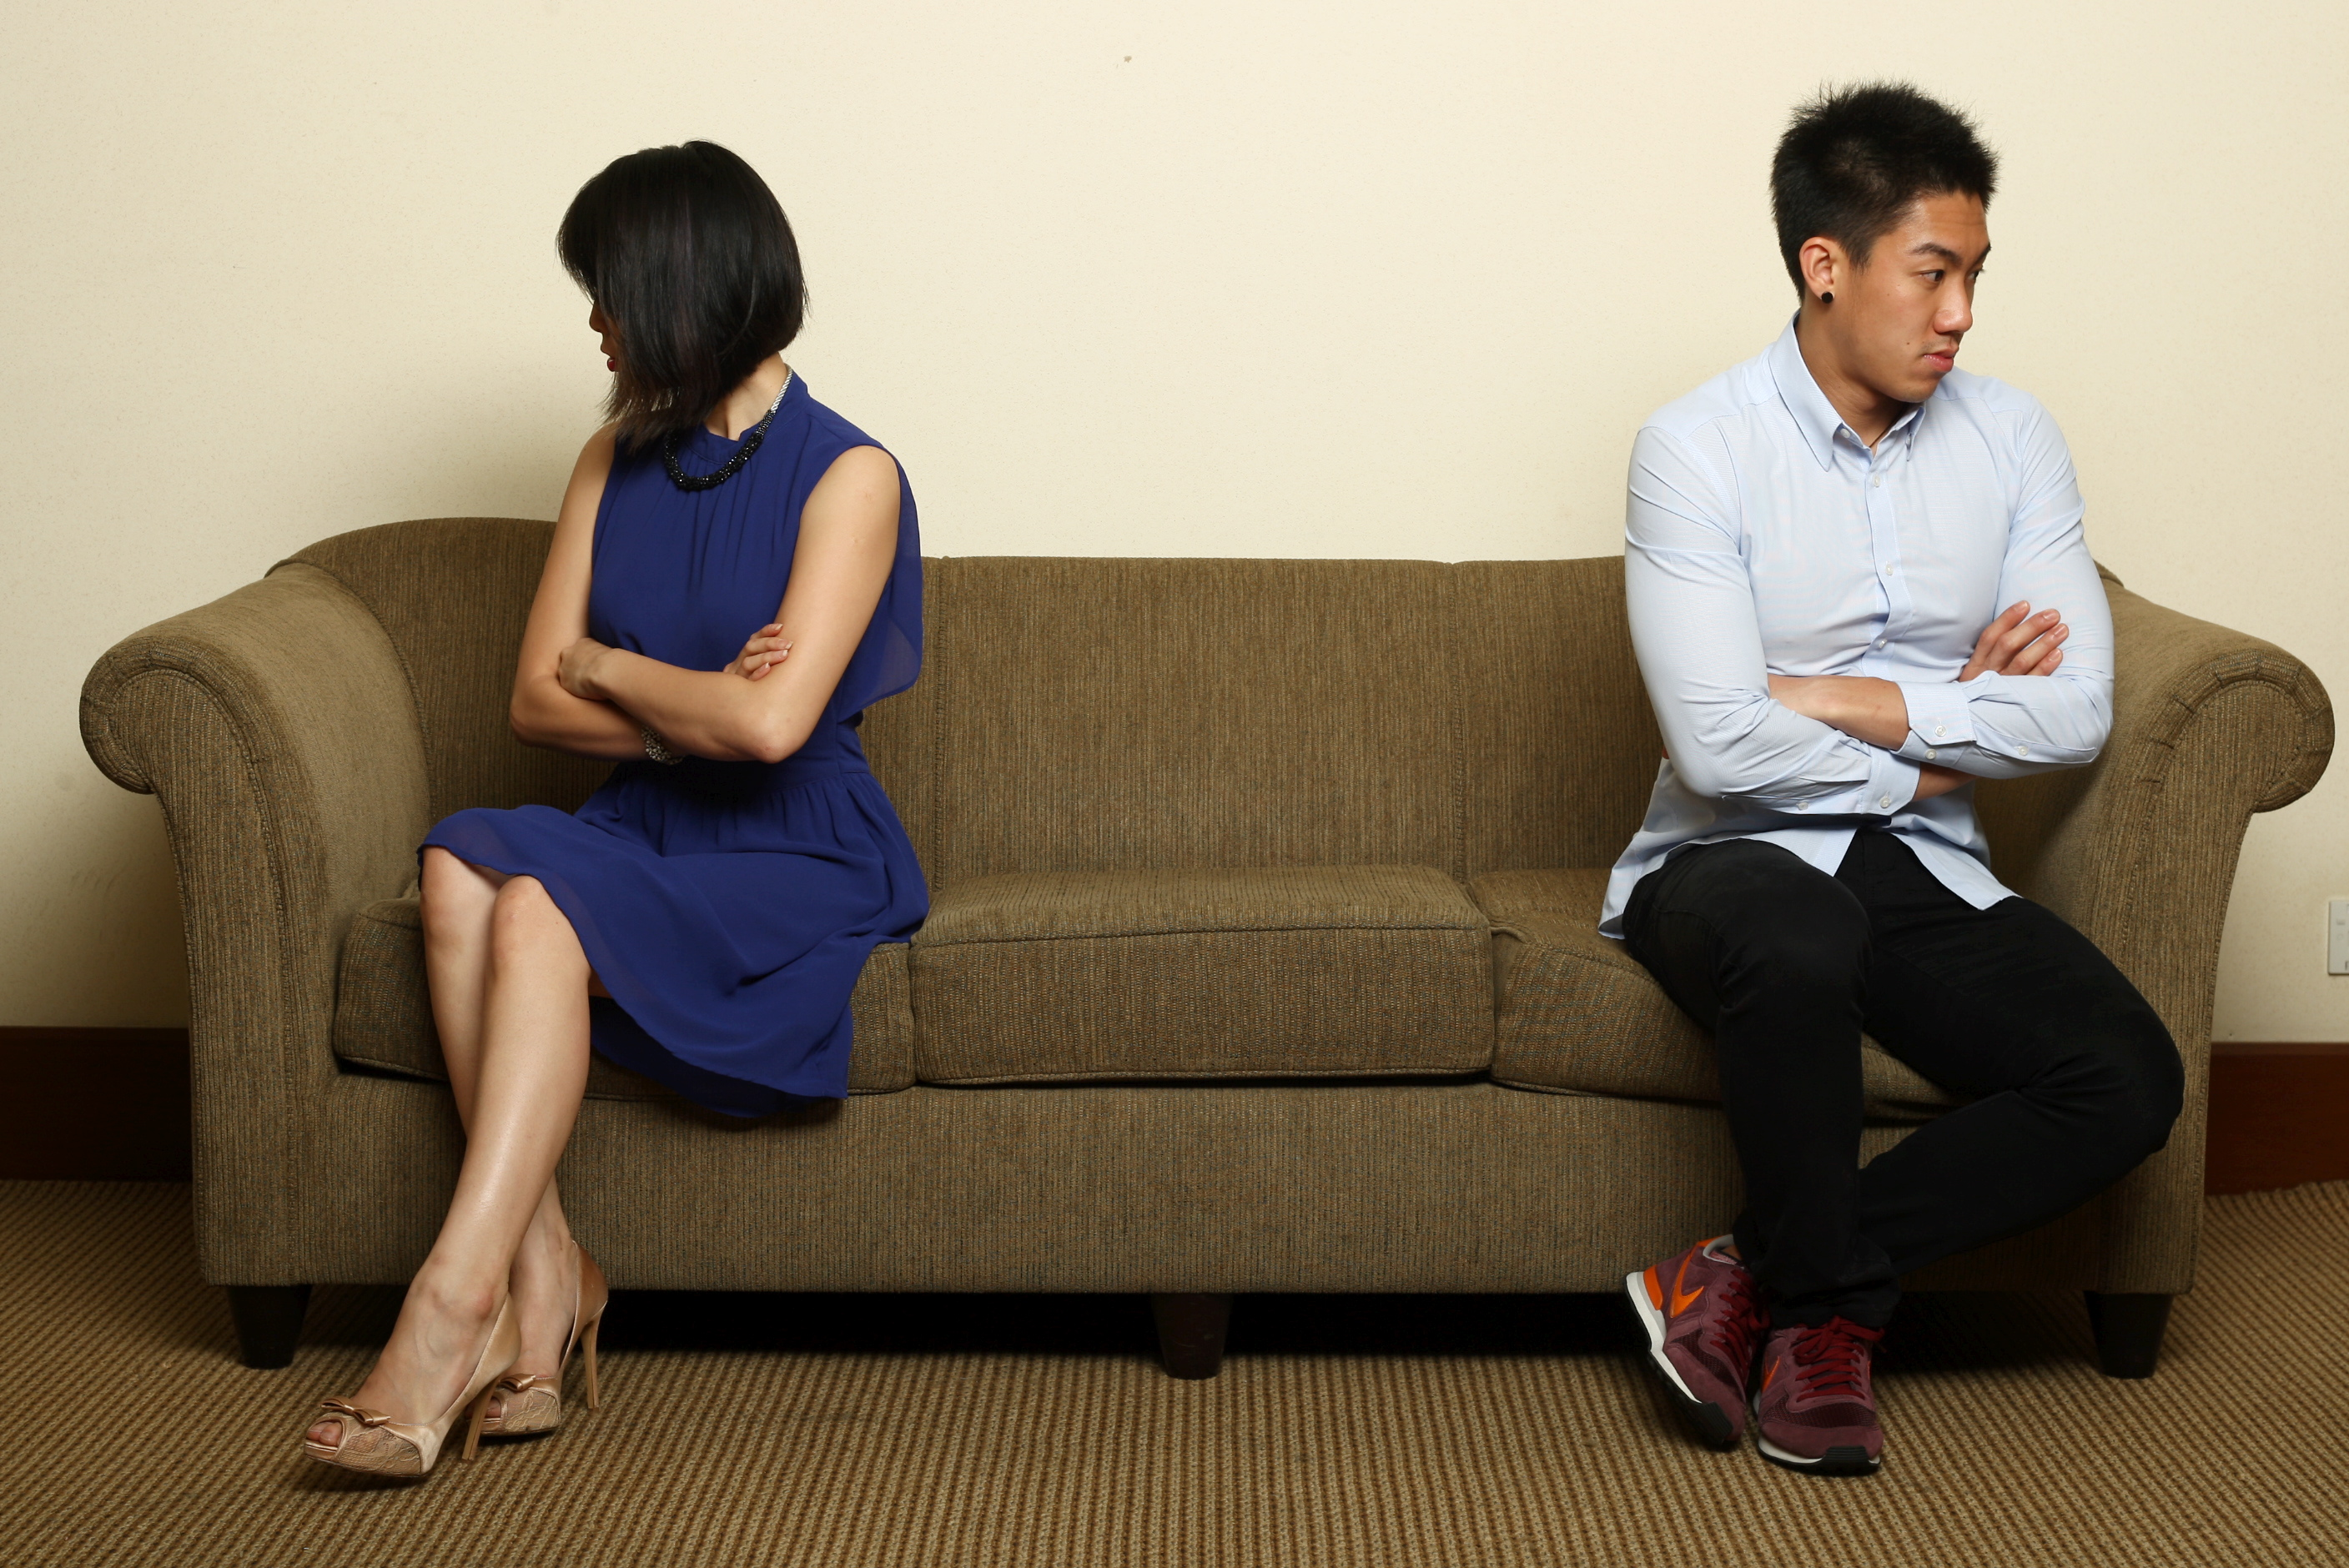 Seems divorce rates among asians are right